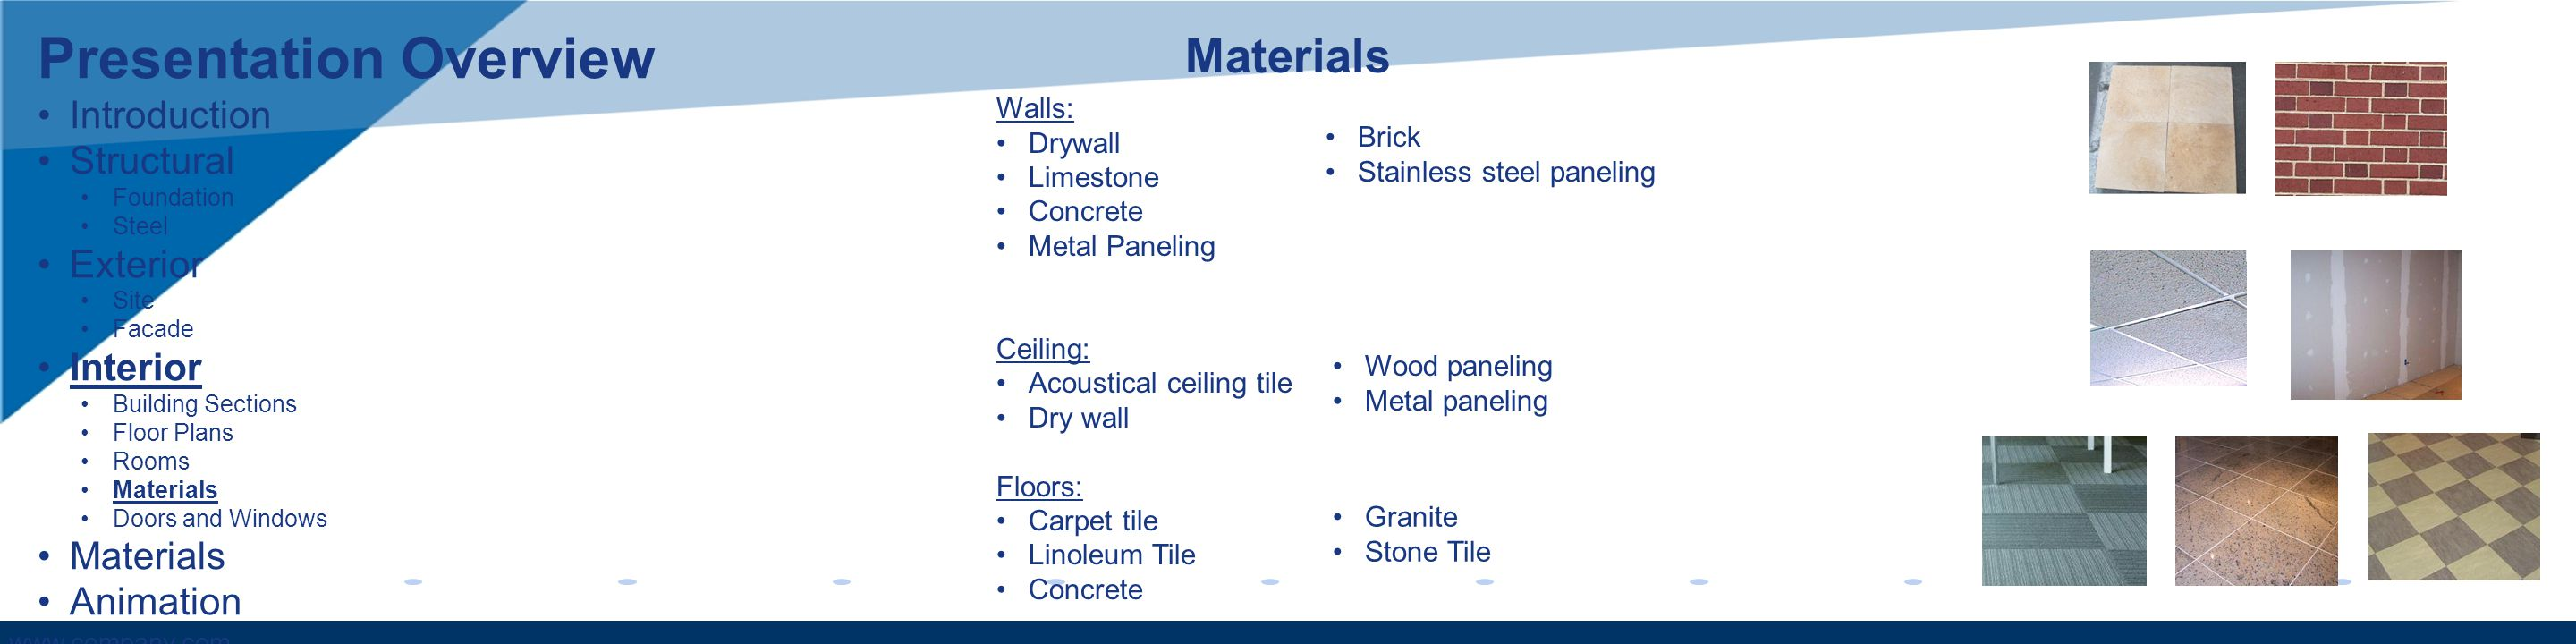 www.company.com Materials Walls: Drywall Limestone Concrete Metal Paneling Ceiling: Acoustical ceiling tile Dry wall Floors: Carpet tile Linoleum Tile